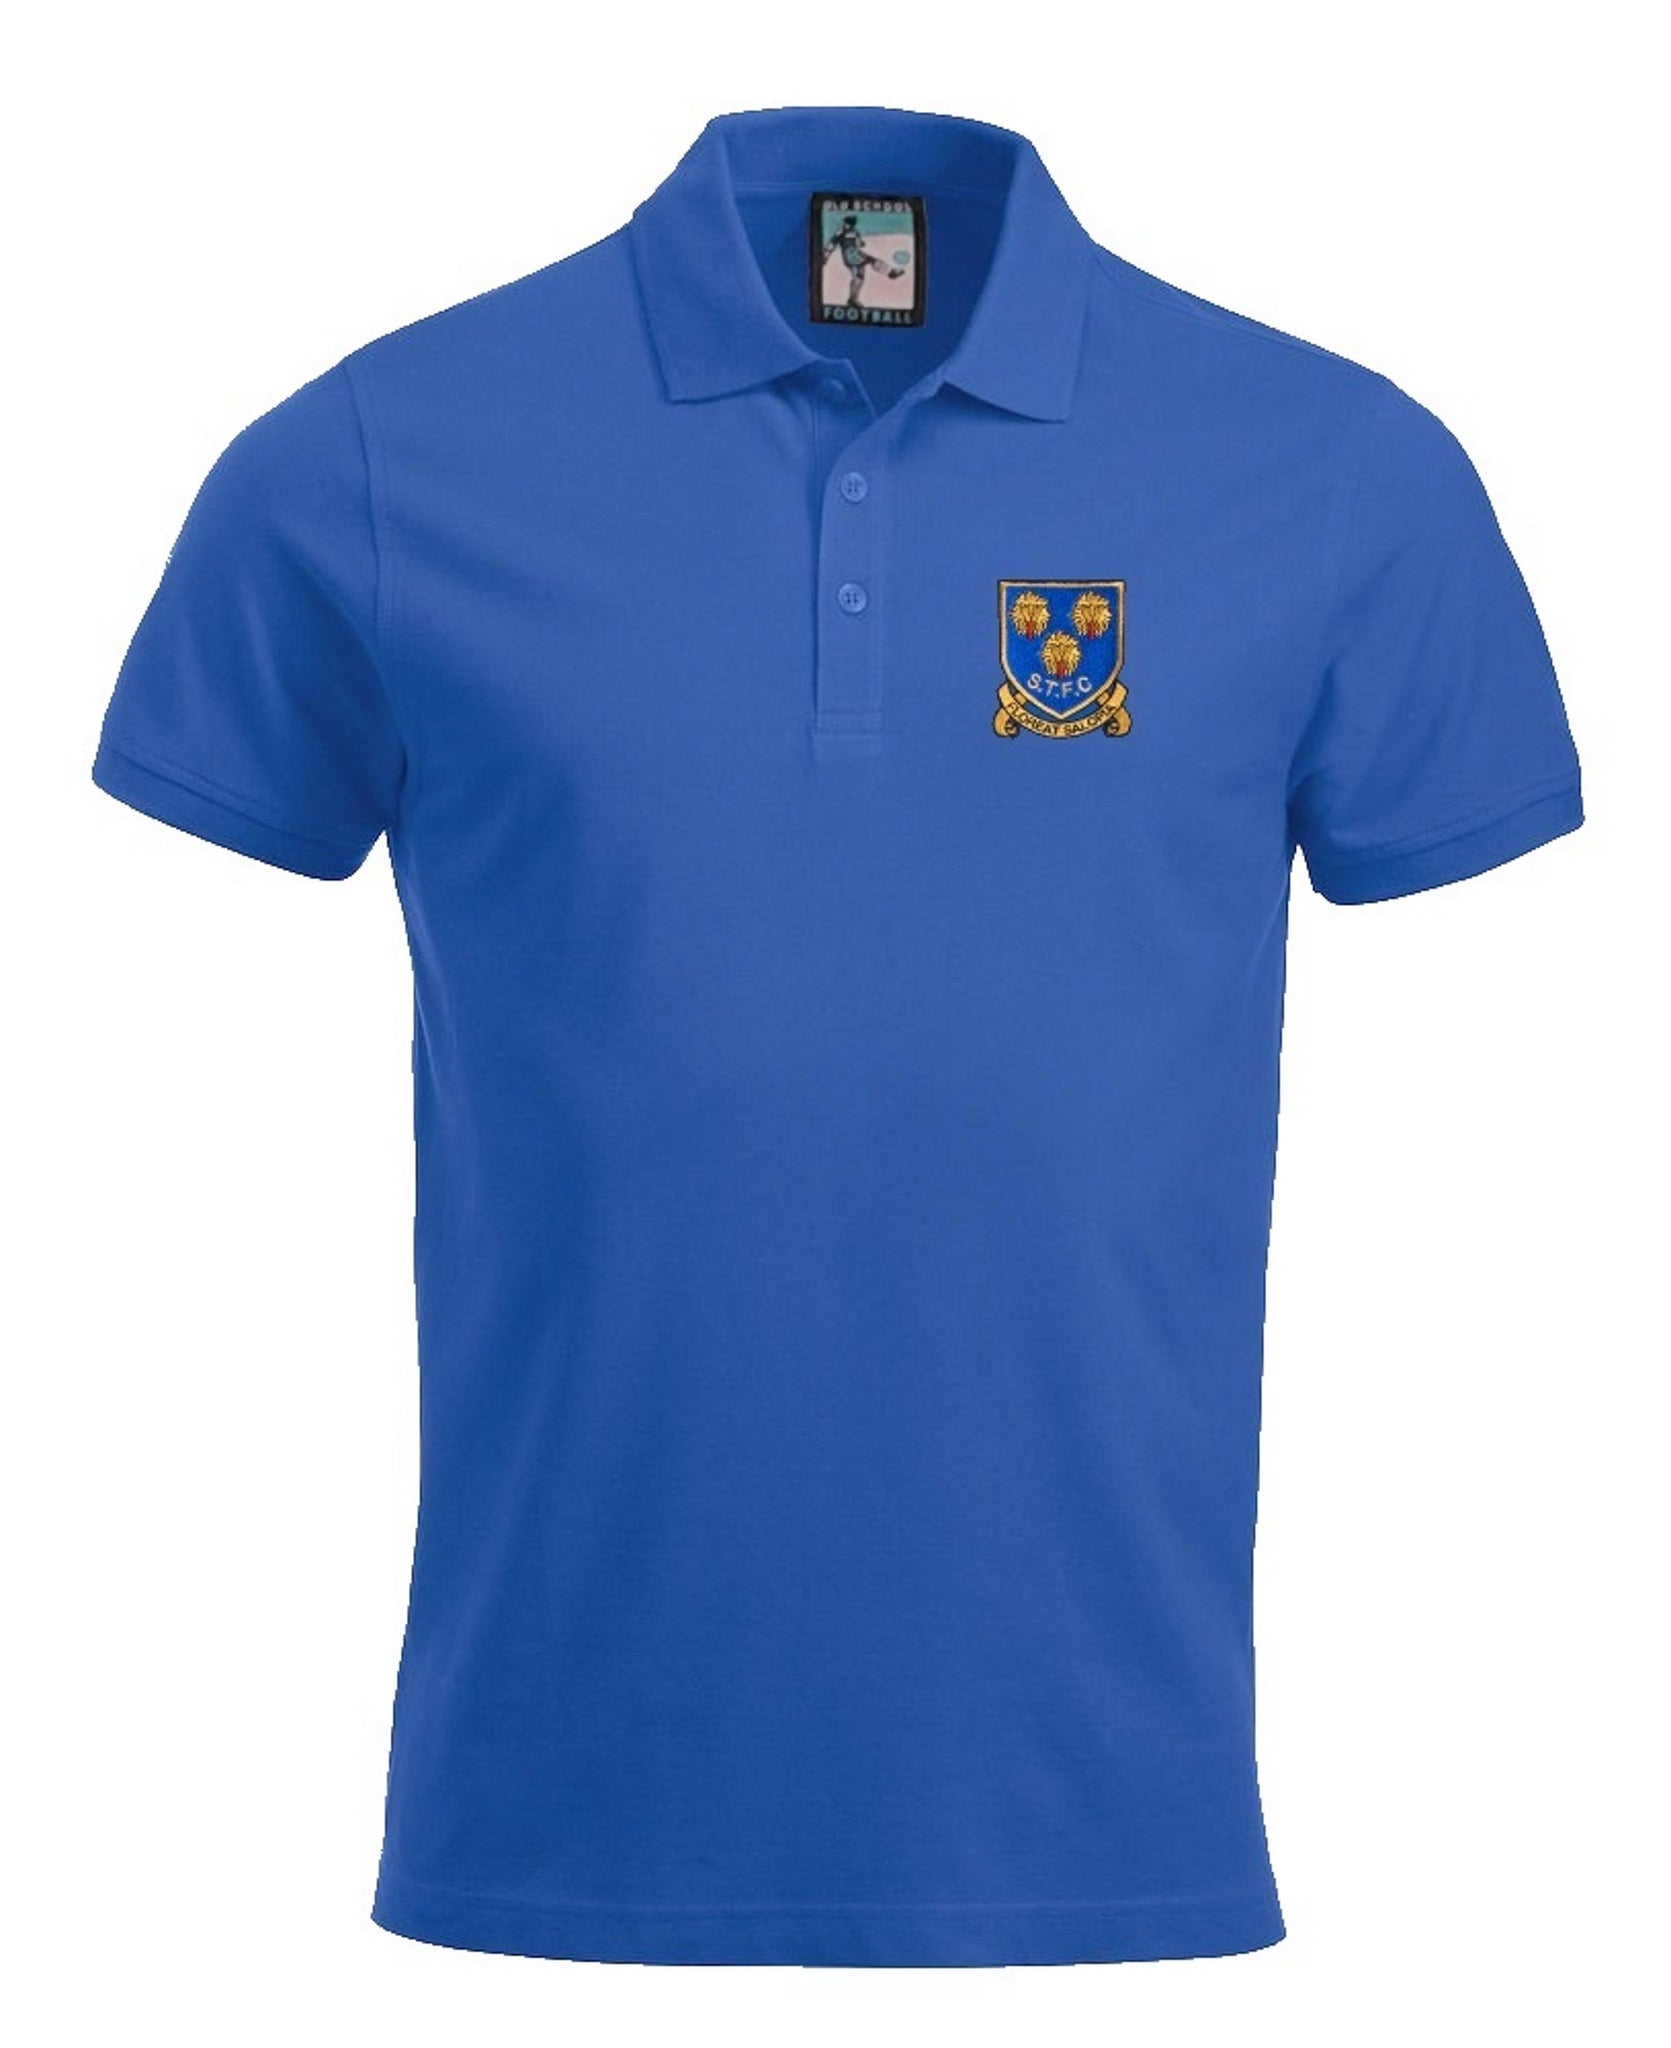 Shrewsbury Town Retro 1970s Football Polo Shirt - Polo